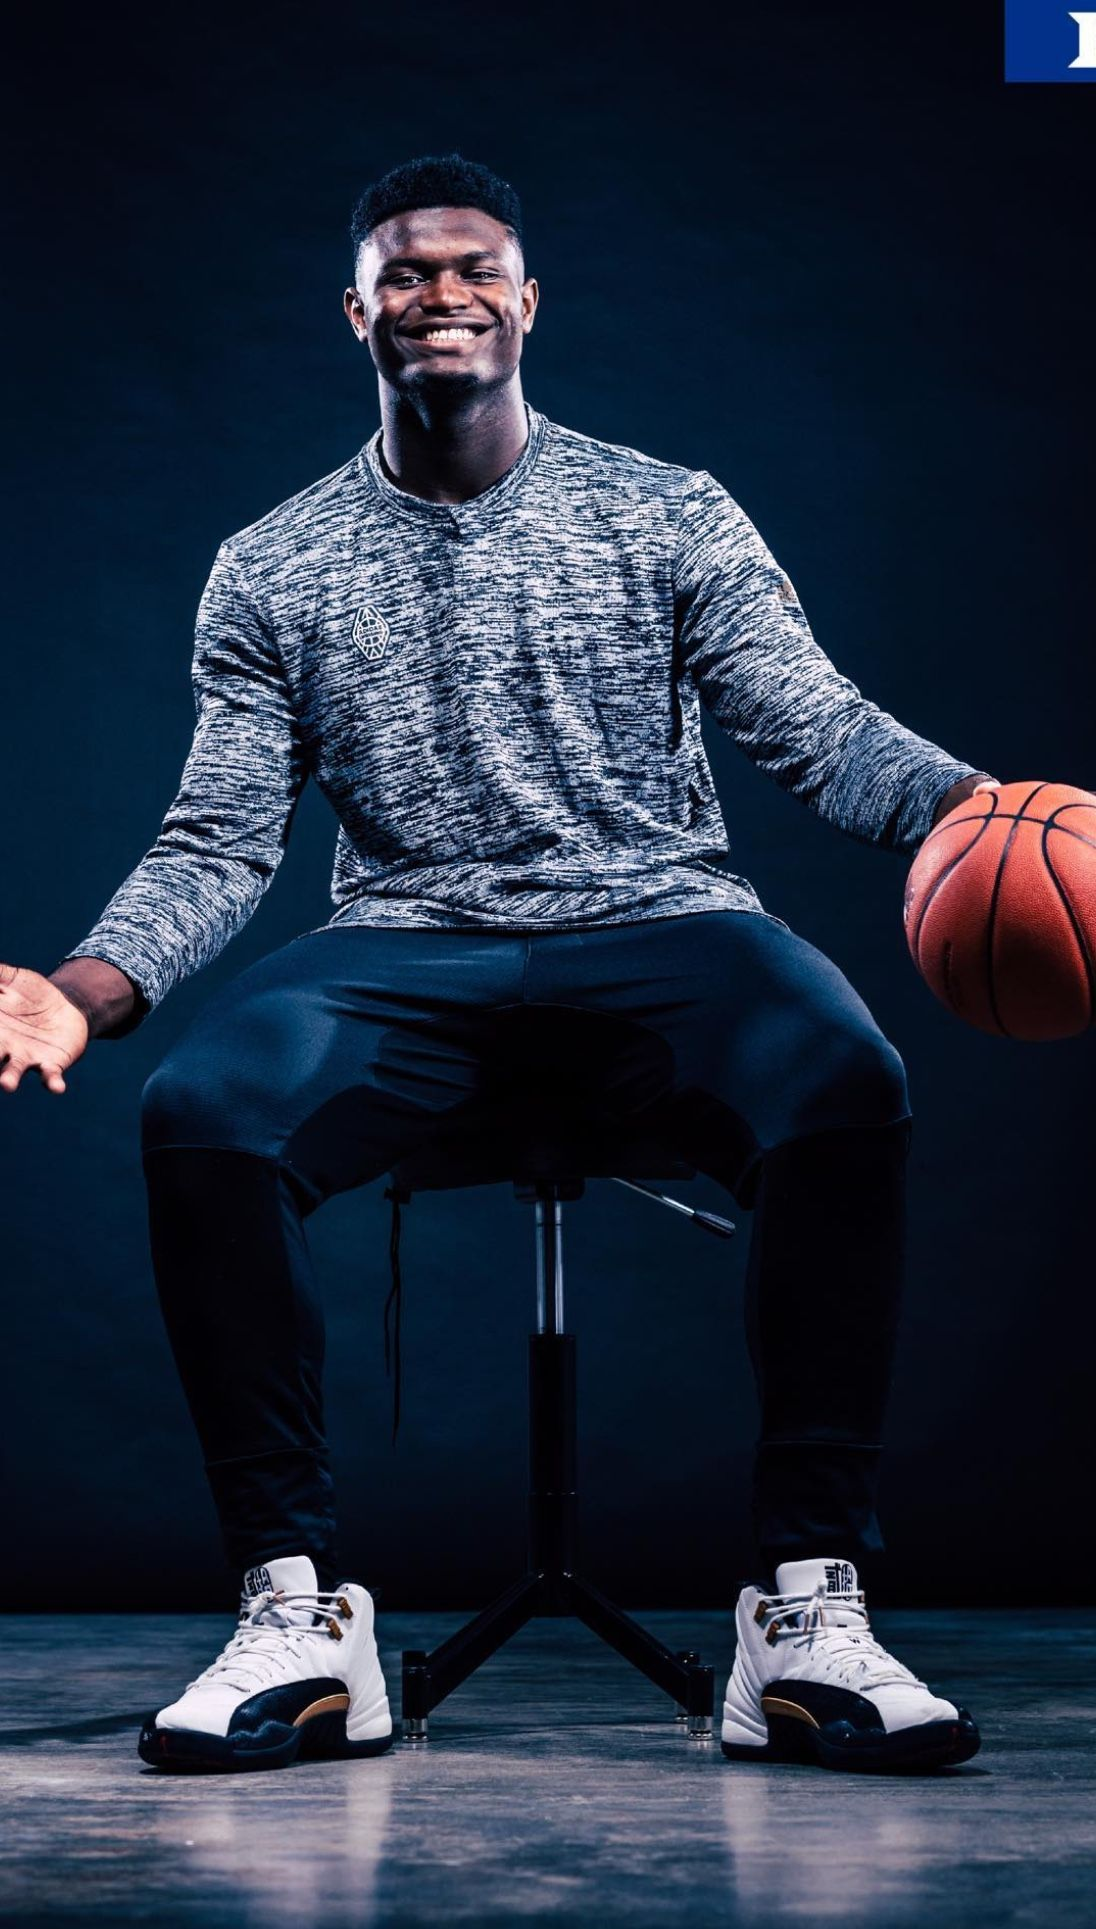 Zion Williamson Duke blue devils basketball, Duke